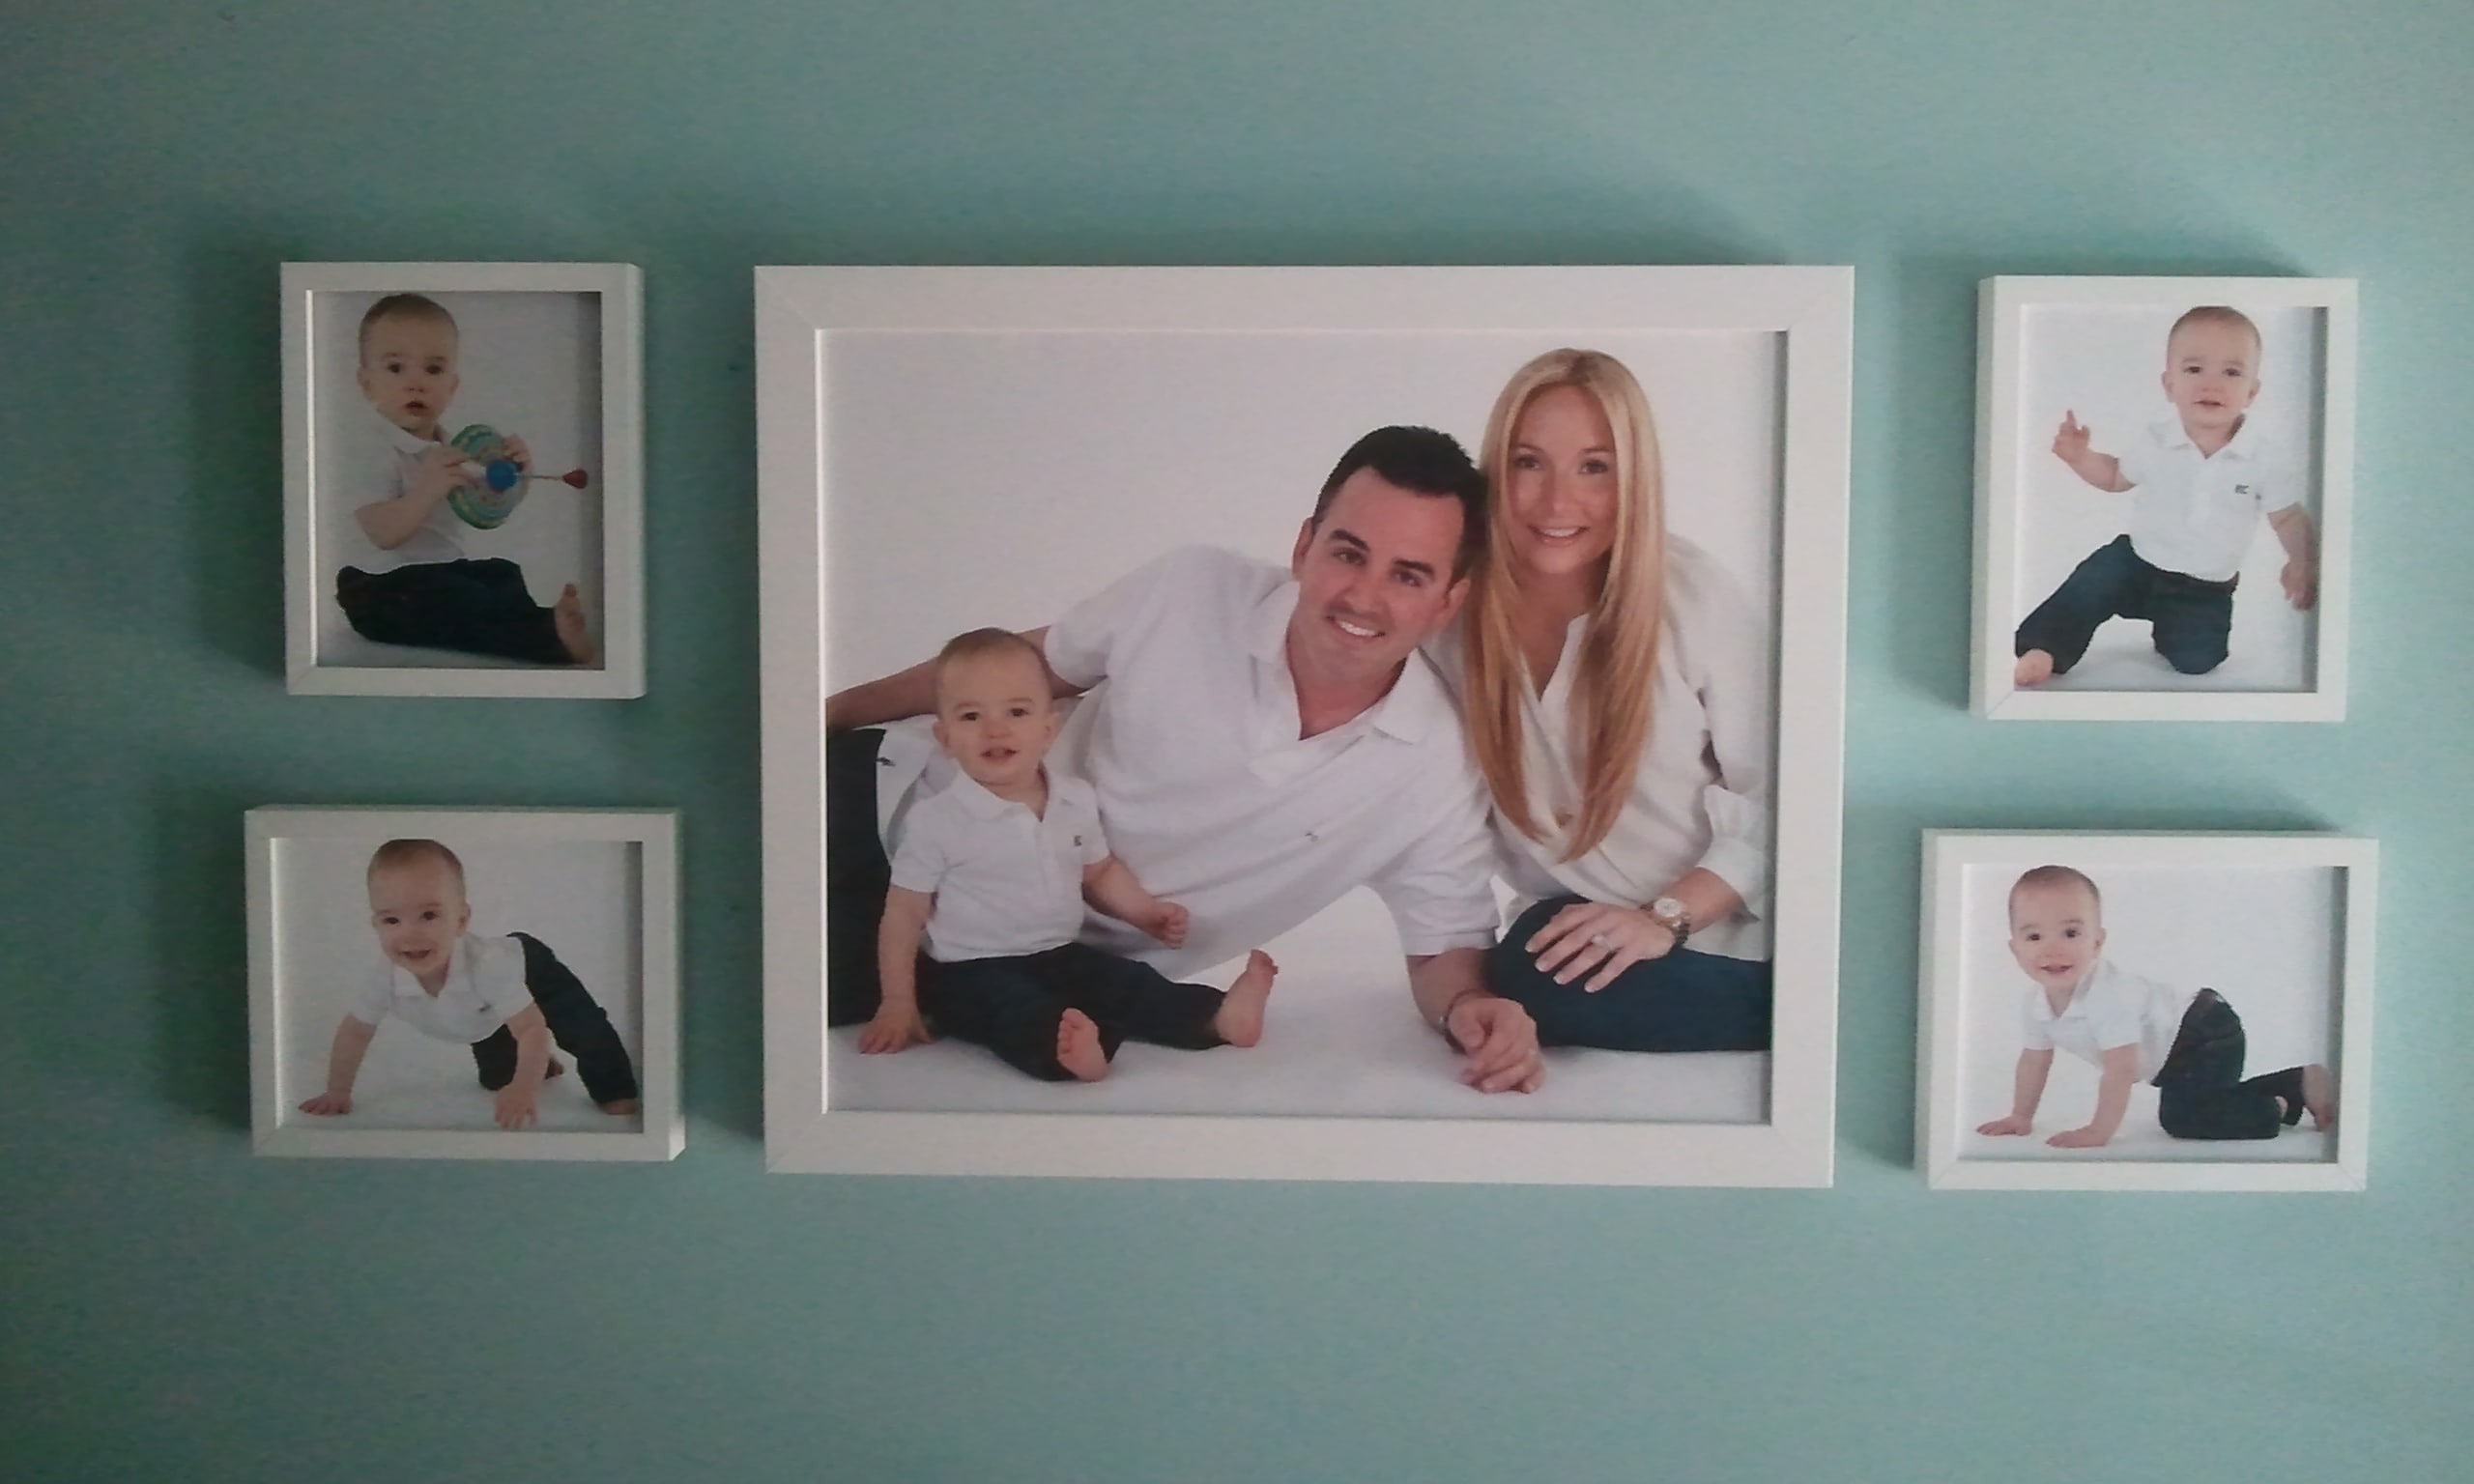 Family portrait wall grouping | The Frame Studio